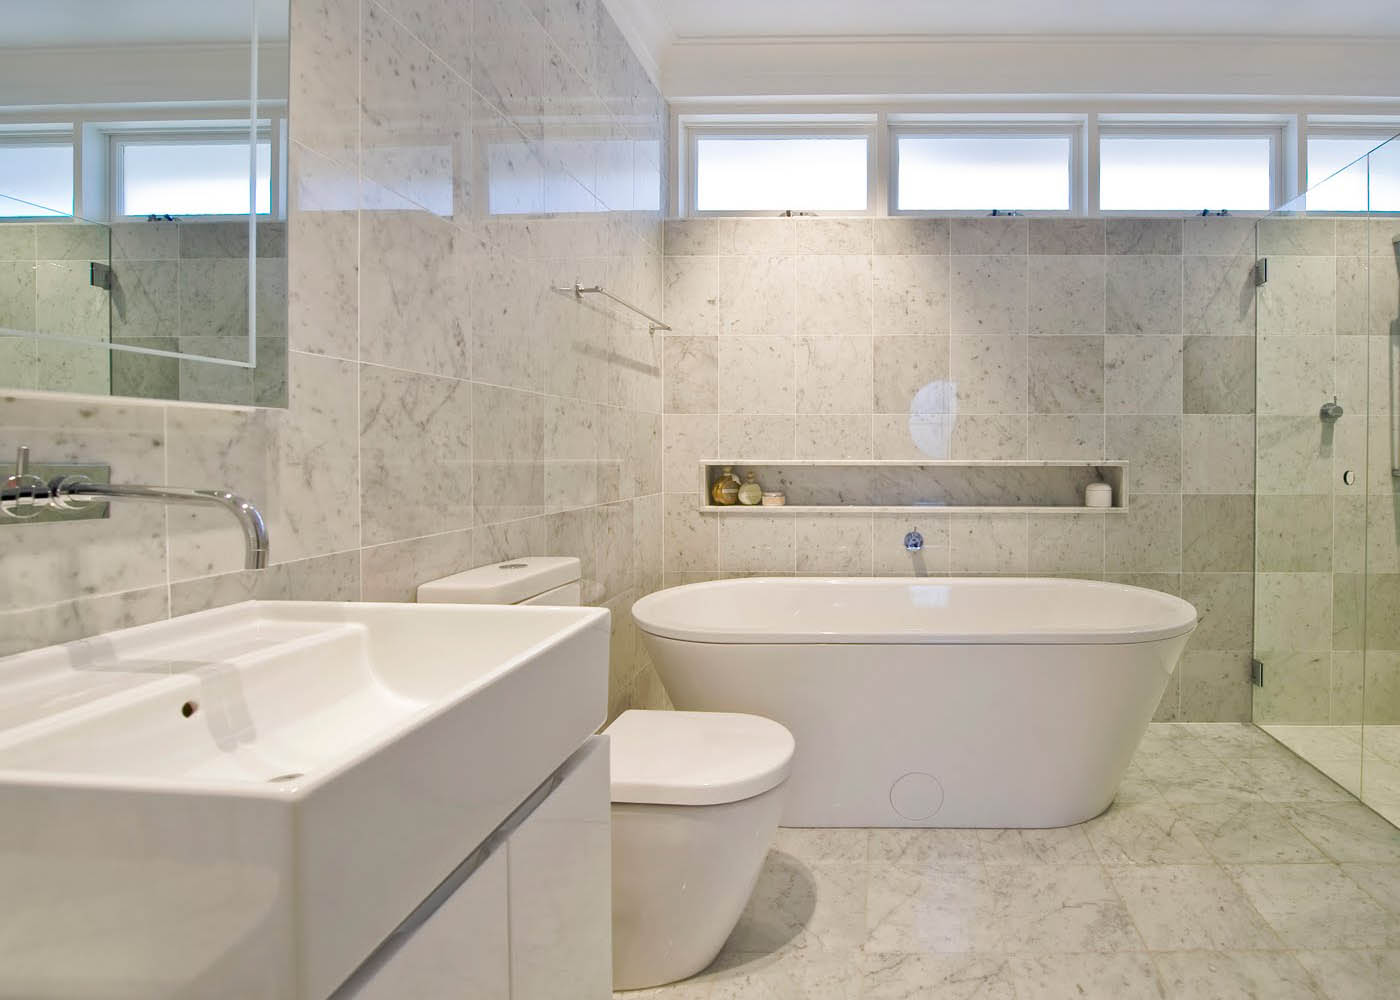 astounding bathroom tub tile ideas | 29 stunning natural stone bathroom ideas and pictures 2019